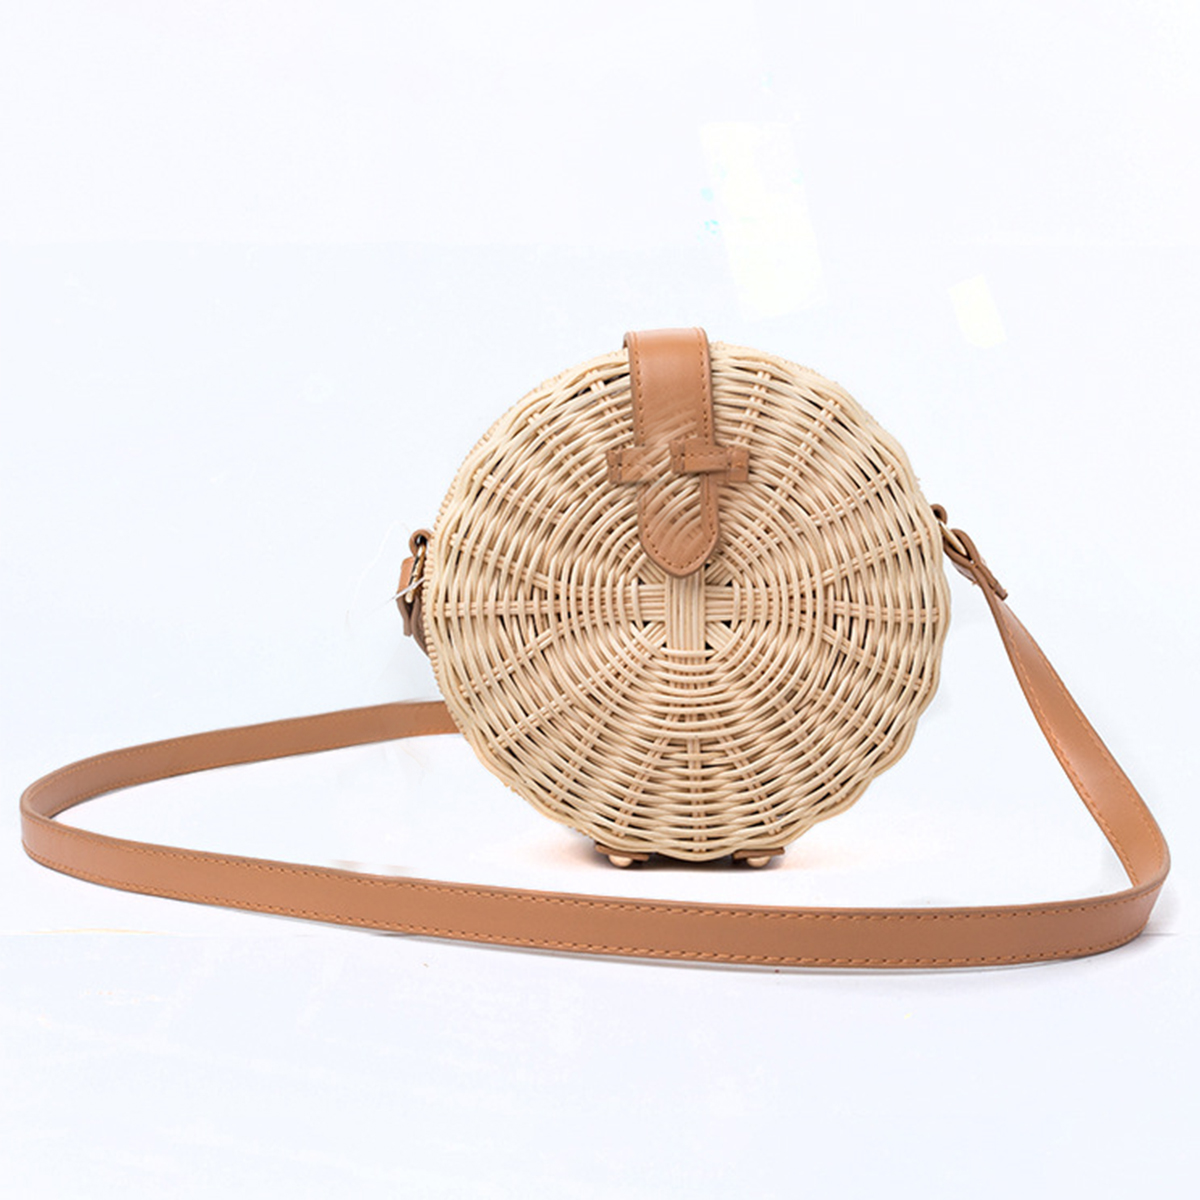 Bohemian Bali Rattan Bags For Women Small Circle Lady Straw Beach Handbags Summer Vintage Straw Bag Handmade Crossbody